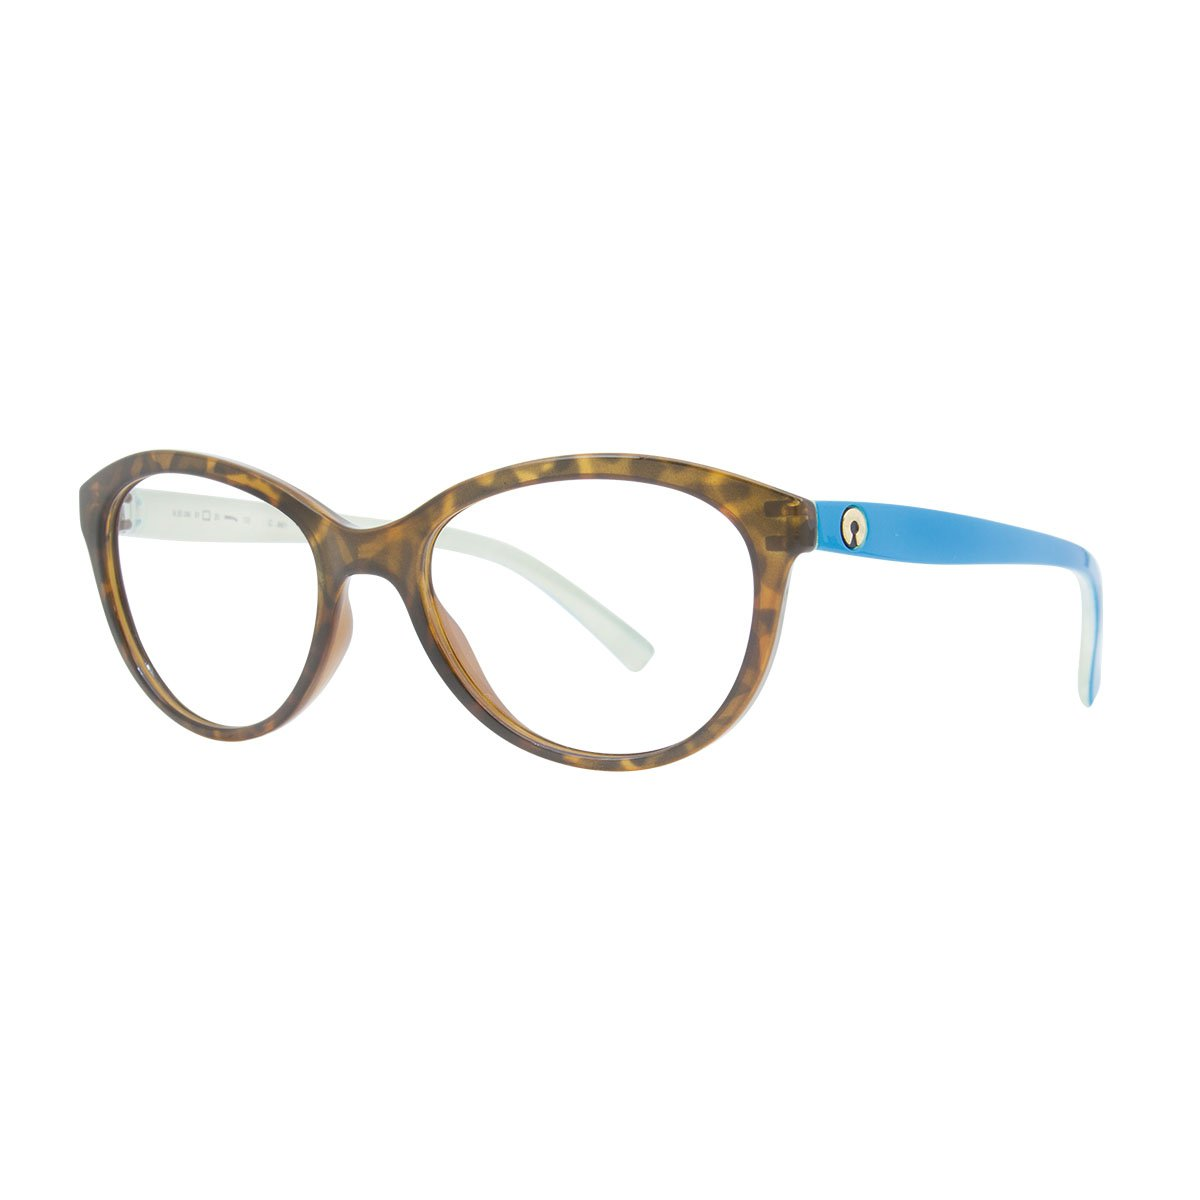 SECRET GRILAMID 80090 HAVANA TURTLE / TEAL